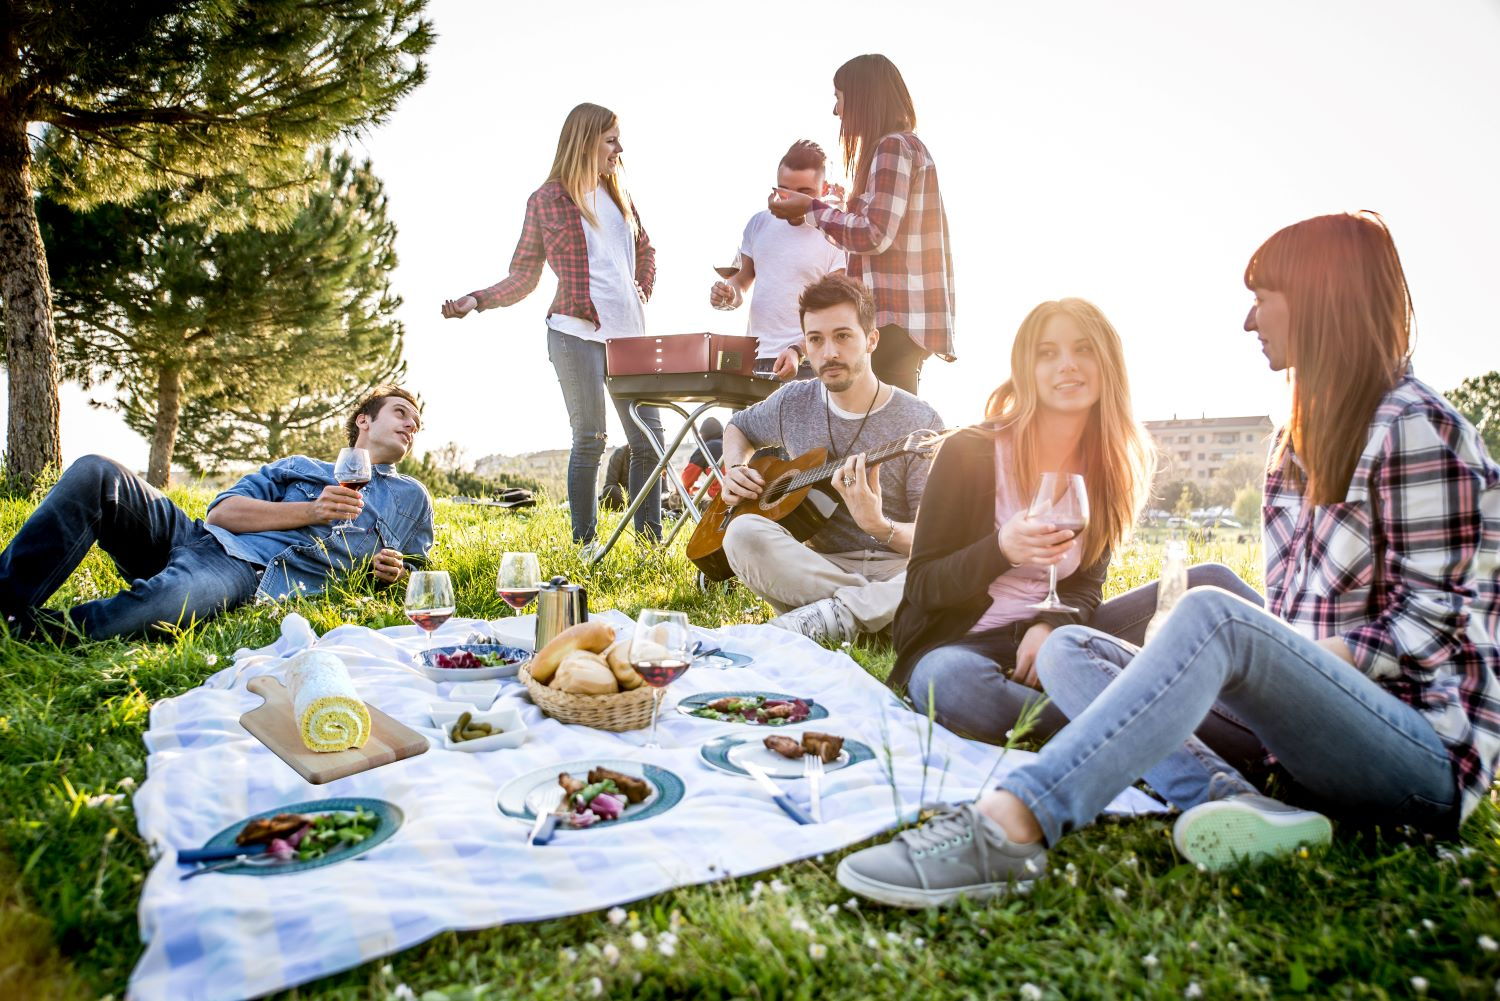 Picnic Desserts - friends gathered around blanket outside with plates of food and drinks